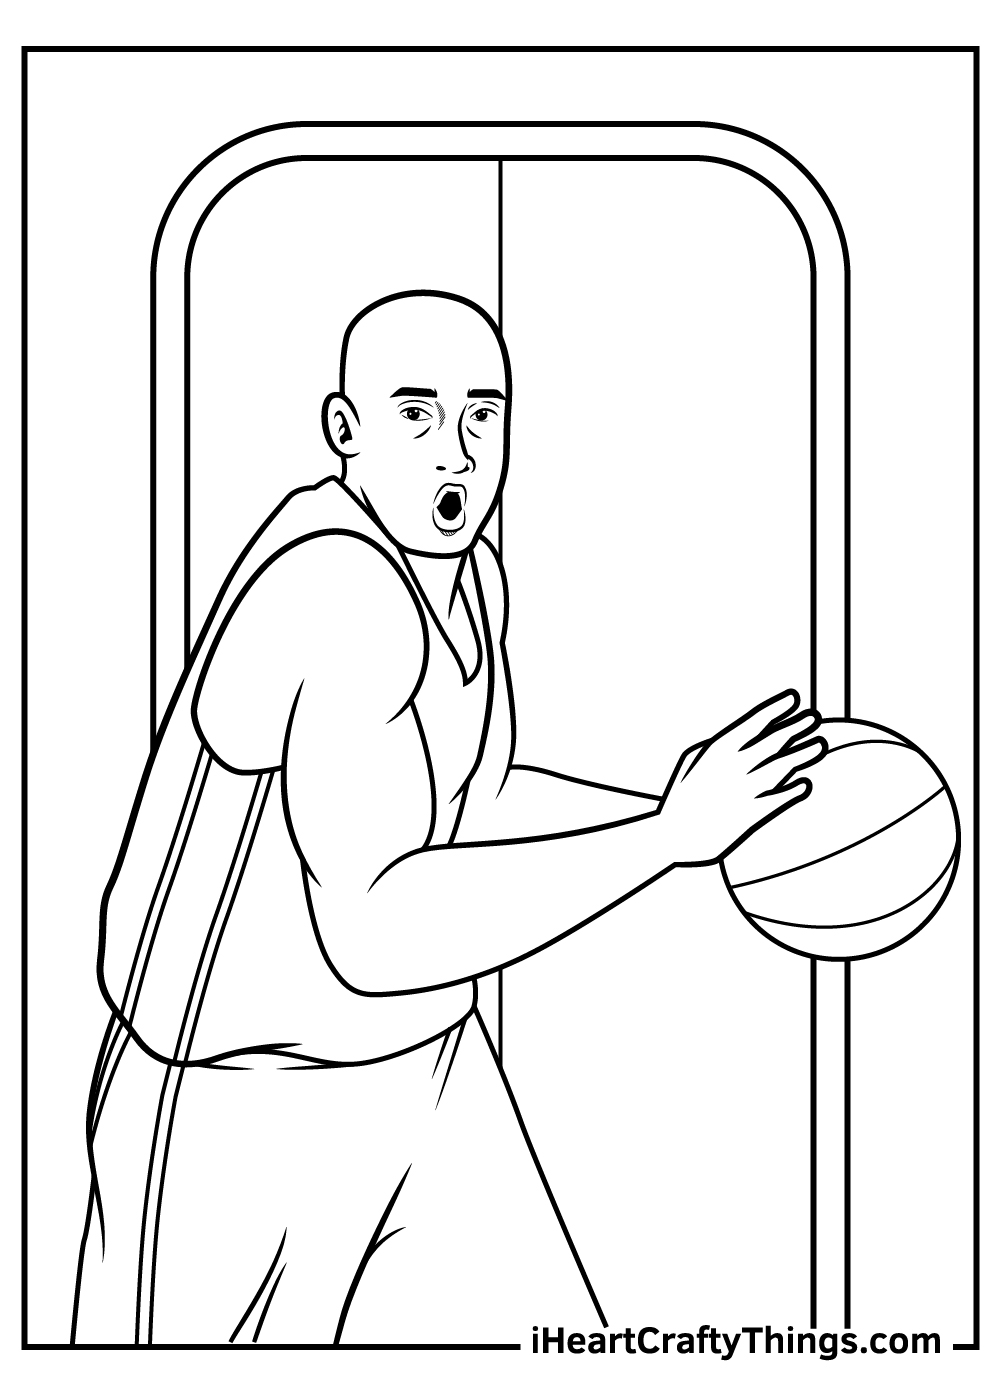 NBA coloring pages free printable for adults